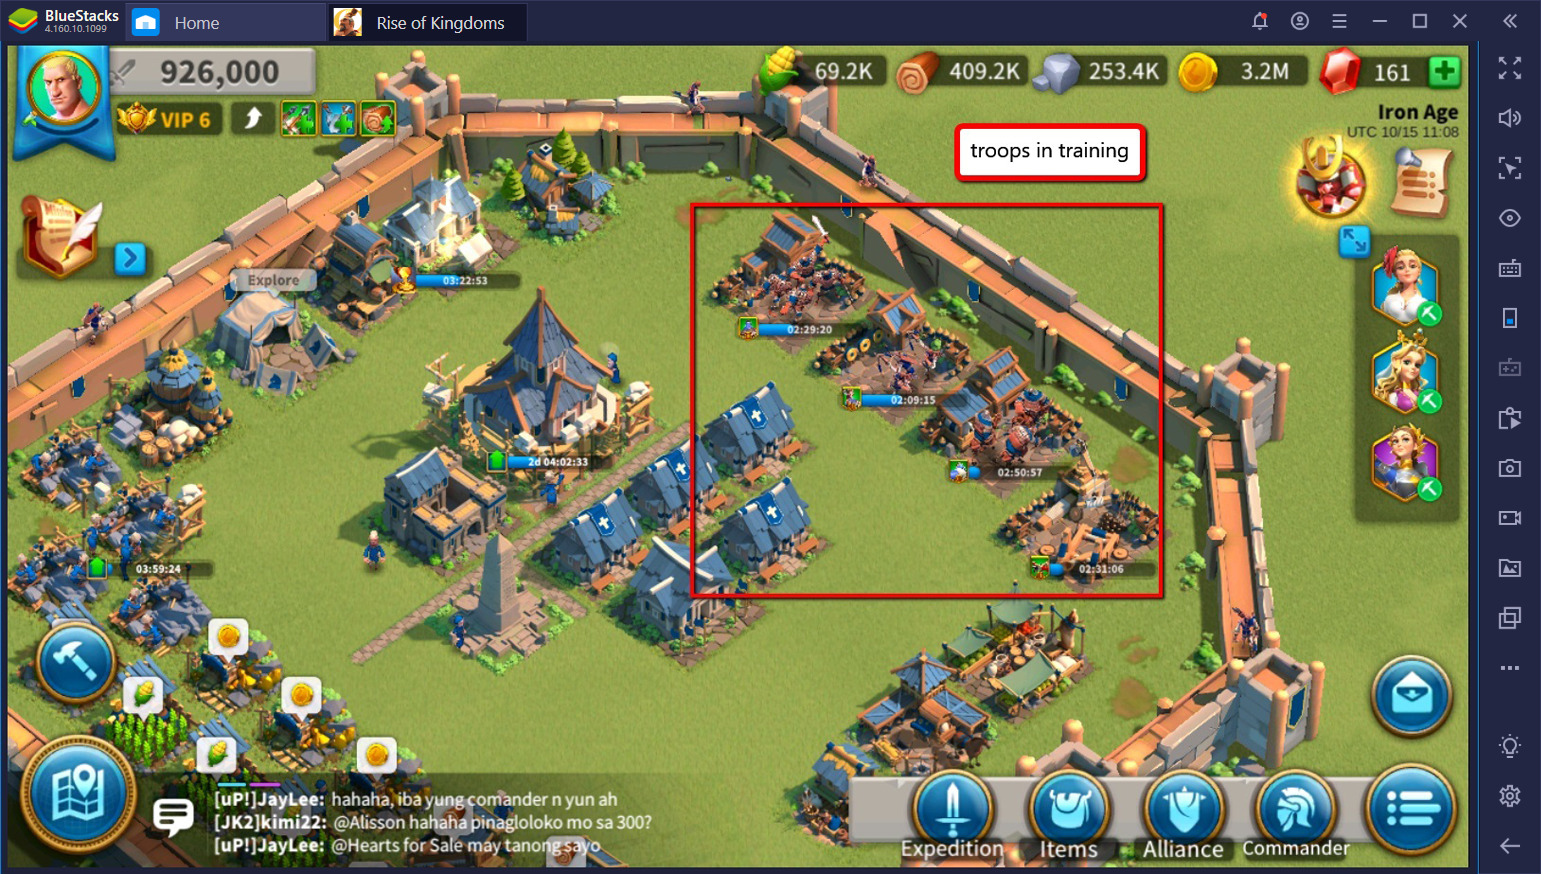 Rise of Kingdoms on PC- City Building Guide: Create Your Own Urban Paradise